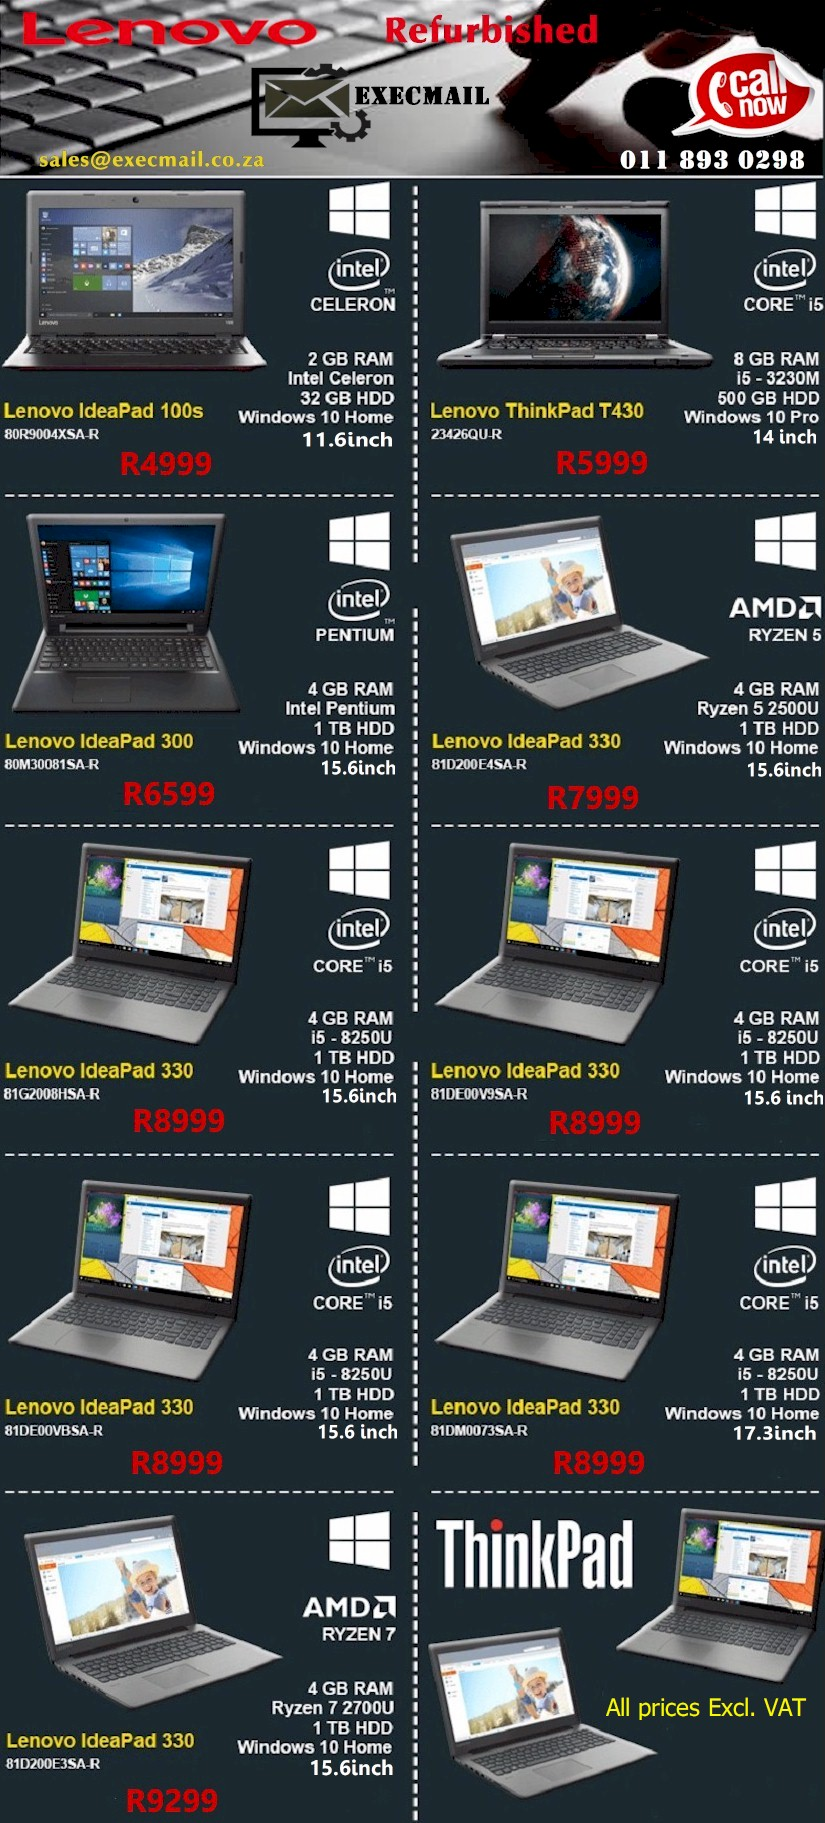 Catch These Lenovo Refurbished Laptop Deals Before They're Gone!